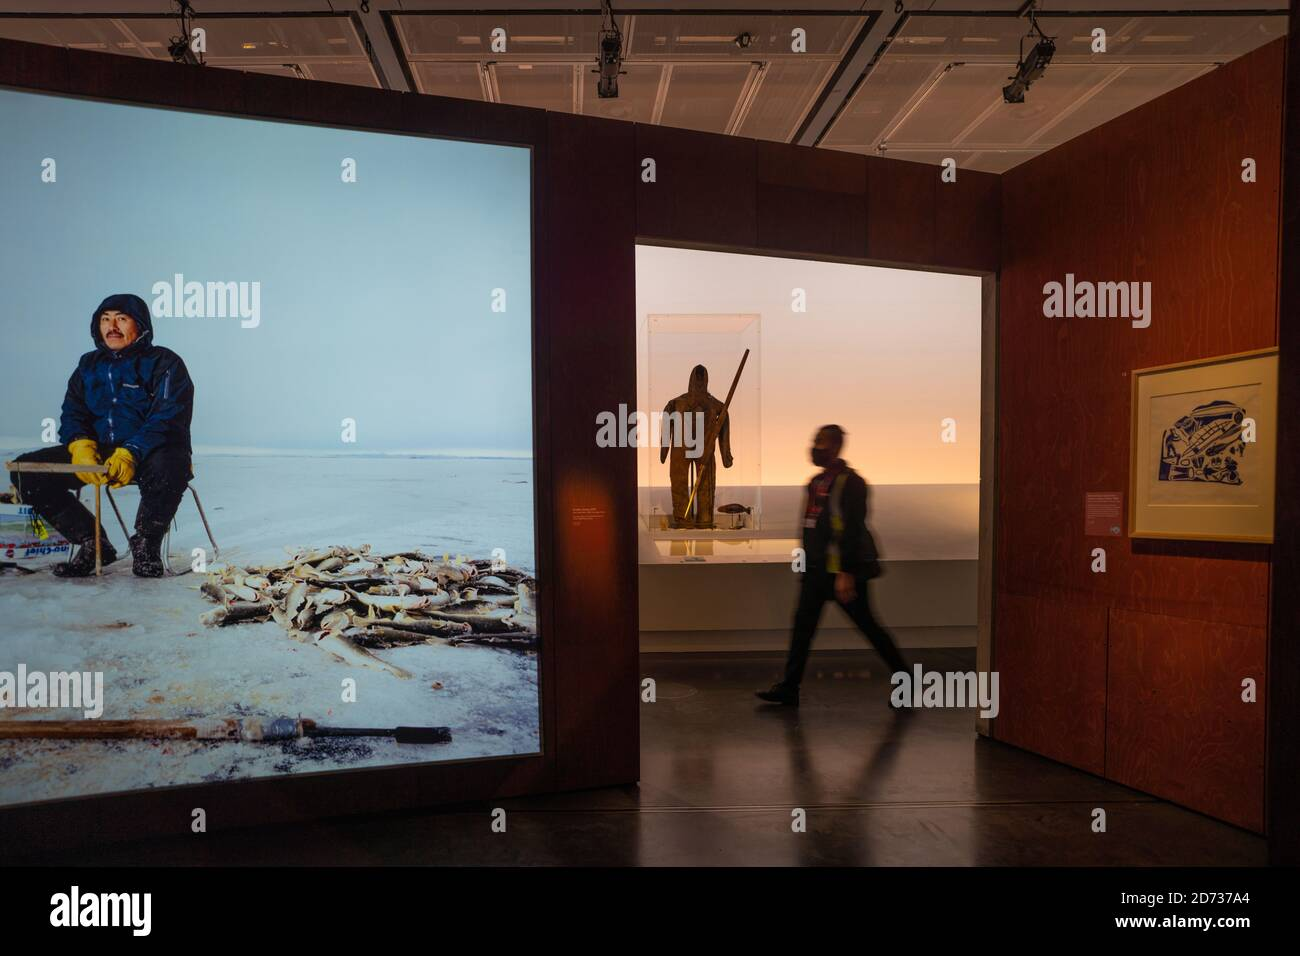 London, UK. 20th Oct, 2020. The Arctic Culture and Climate Citi exhibition at The British Museum. Photo date: Tuesday, October 20, 2020. Photo: Roger Garfield/Alamy Live News. Stock Photo